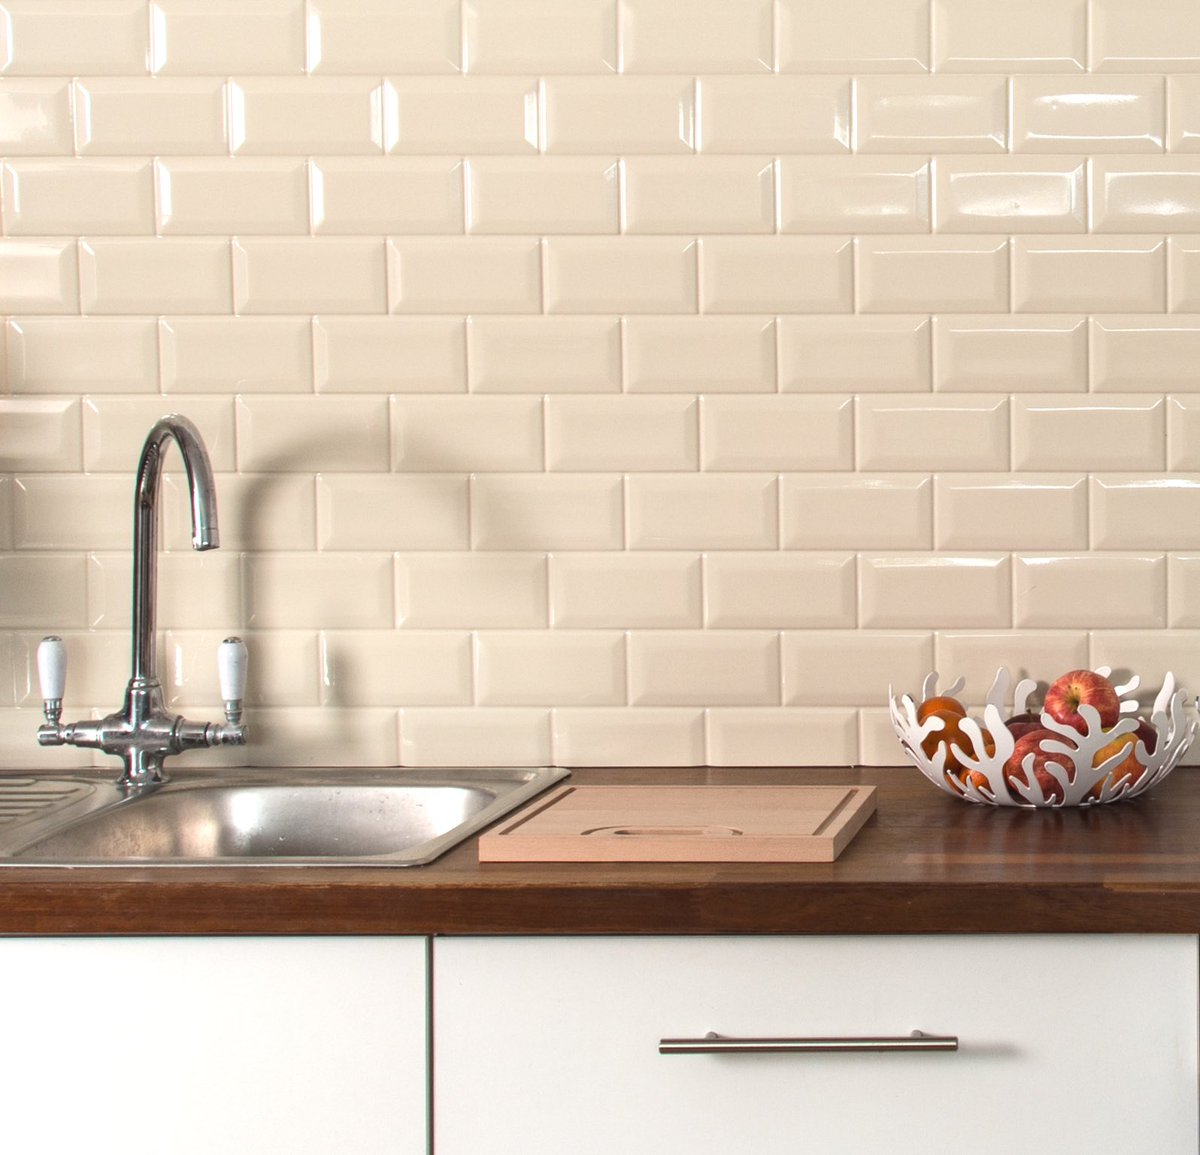 Recosurfaces On Twitter Reduce Landfill Use Eco Friendly Tile Effect Kitchen Splashback From Reco No Tiles No Grout No Waste